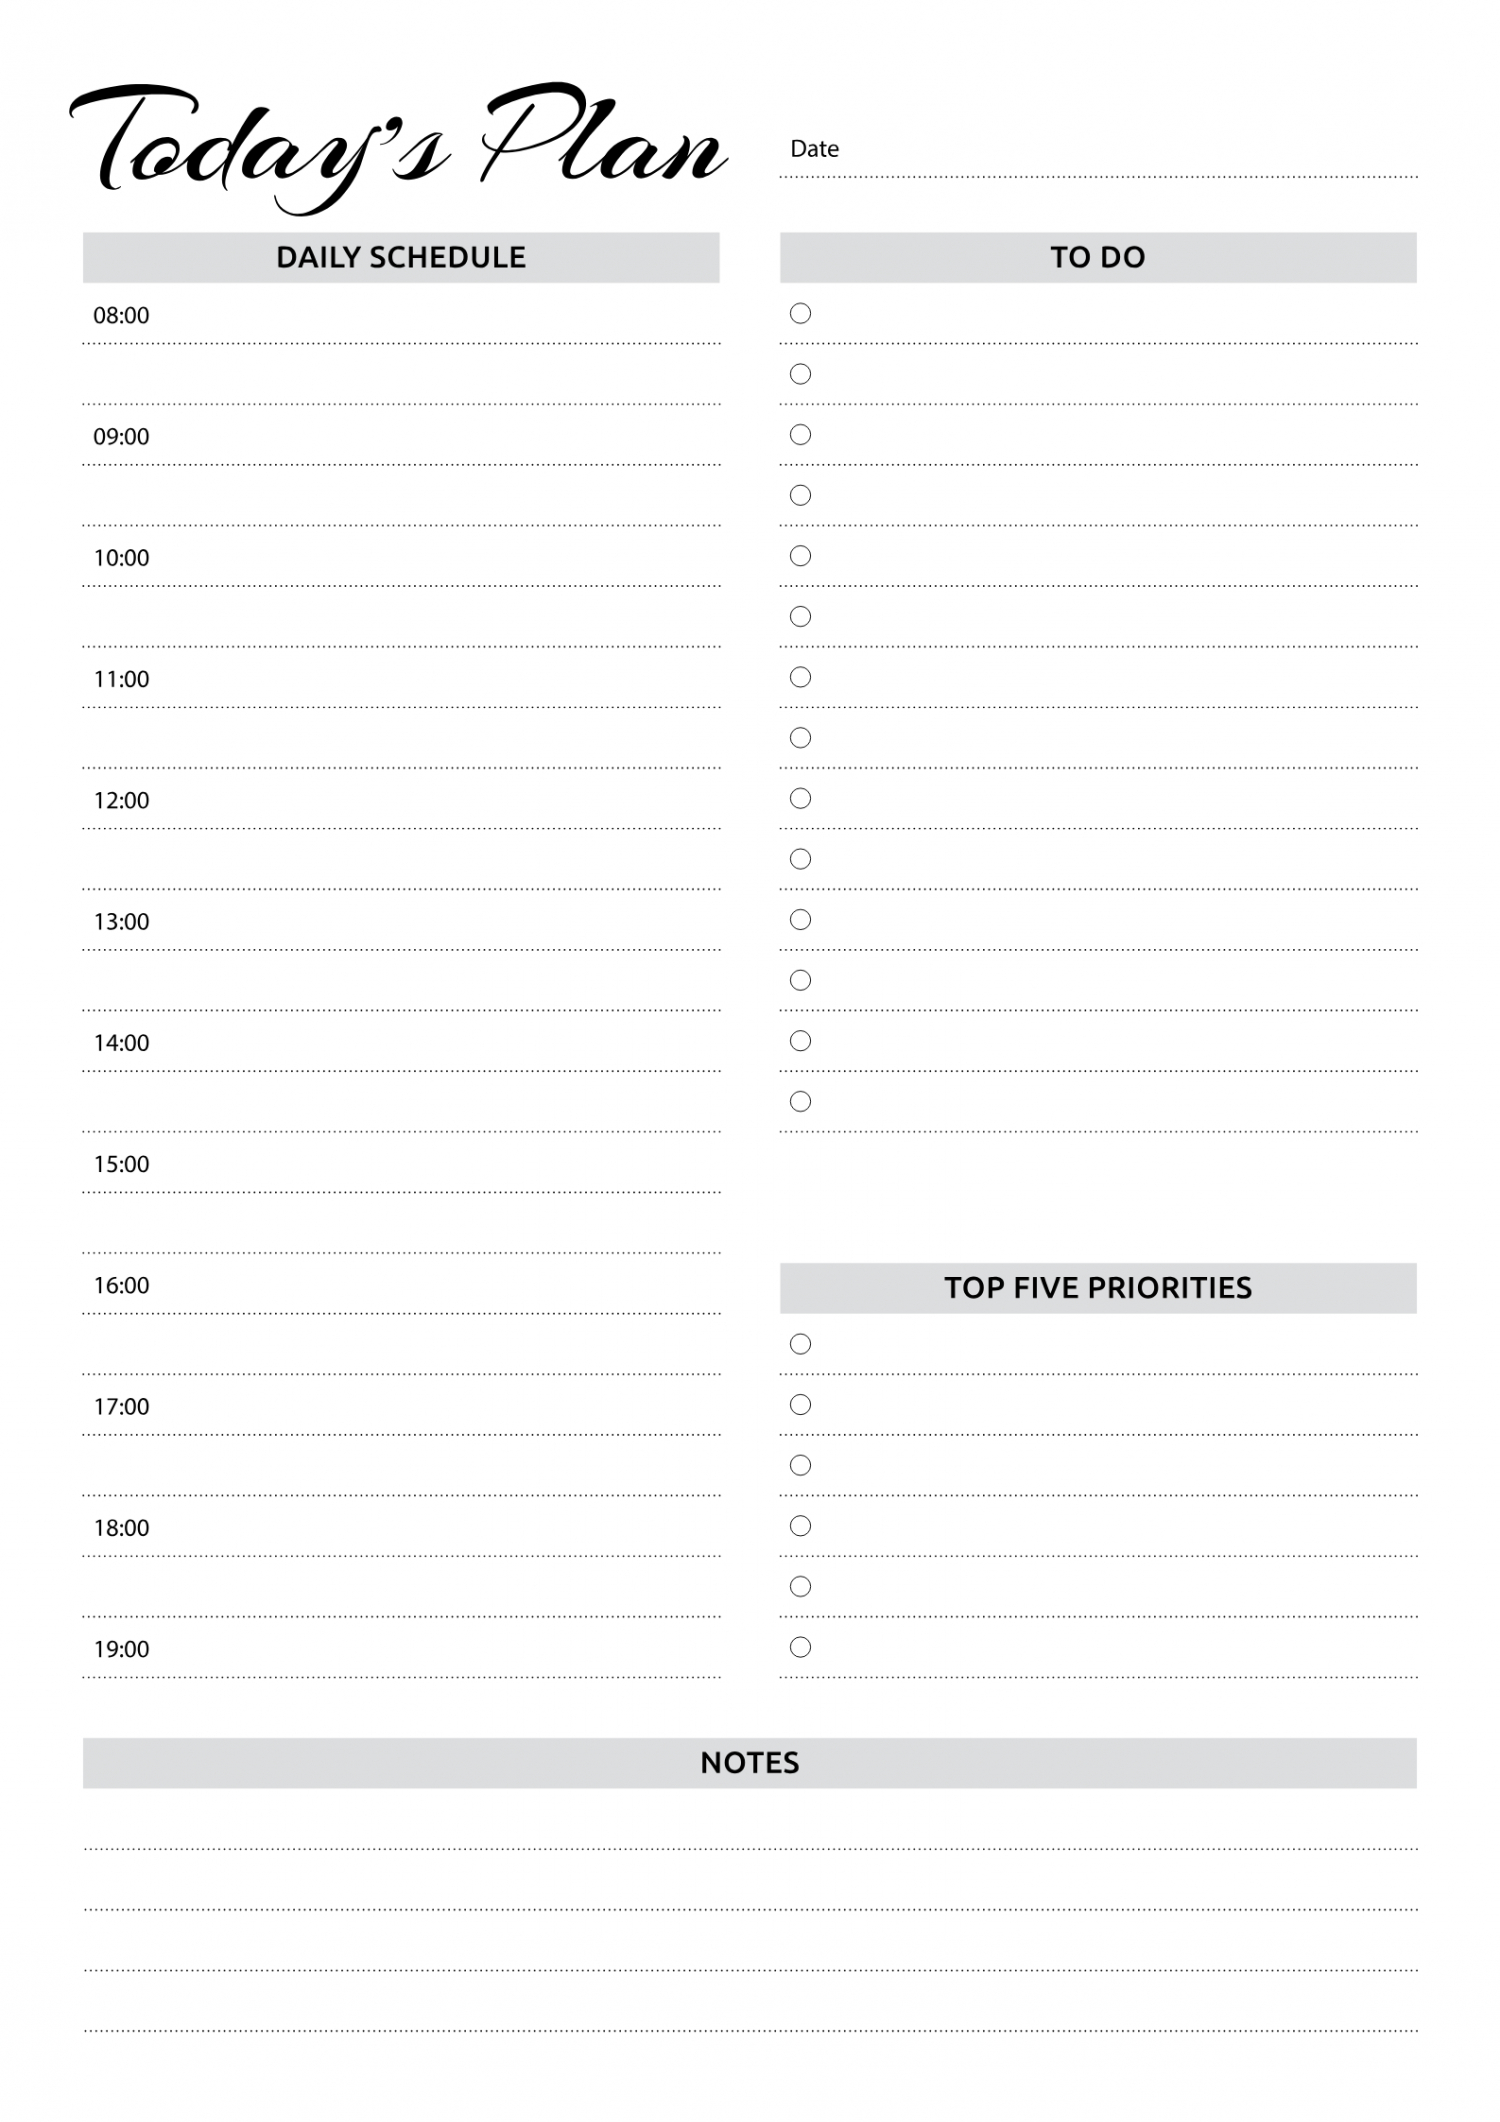 Free Printable Daily Planner With Hourly Schedule & To-Do Daily Calendar By Hour